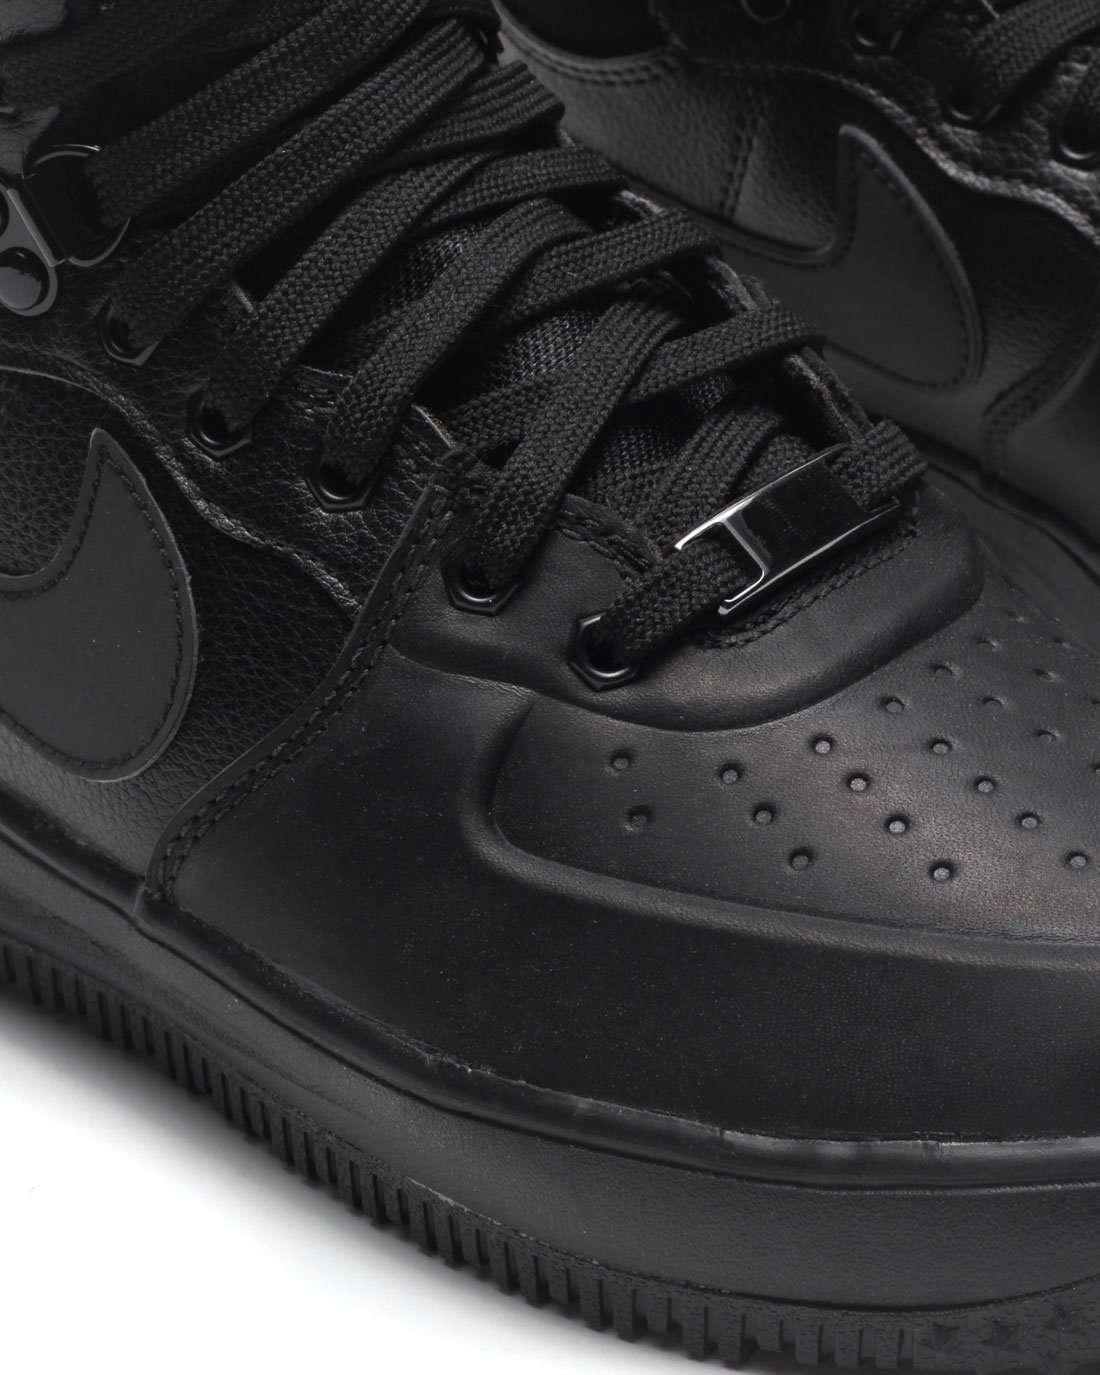 Nike Lunar Force 1 Sneakerboot (GS) Black/Black-Metallic Silver (4.5Y) by Nike (Image #6)